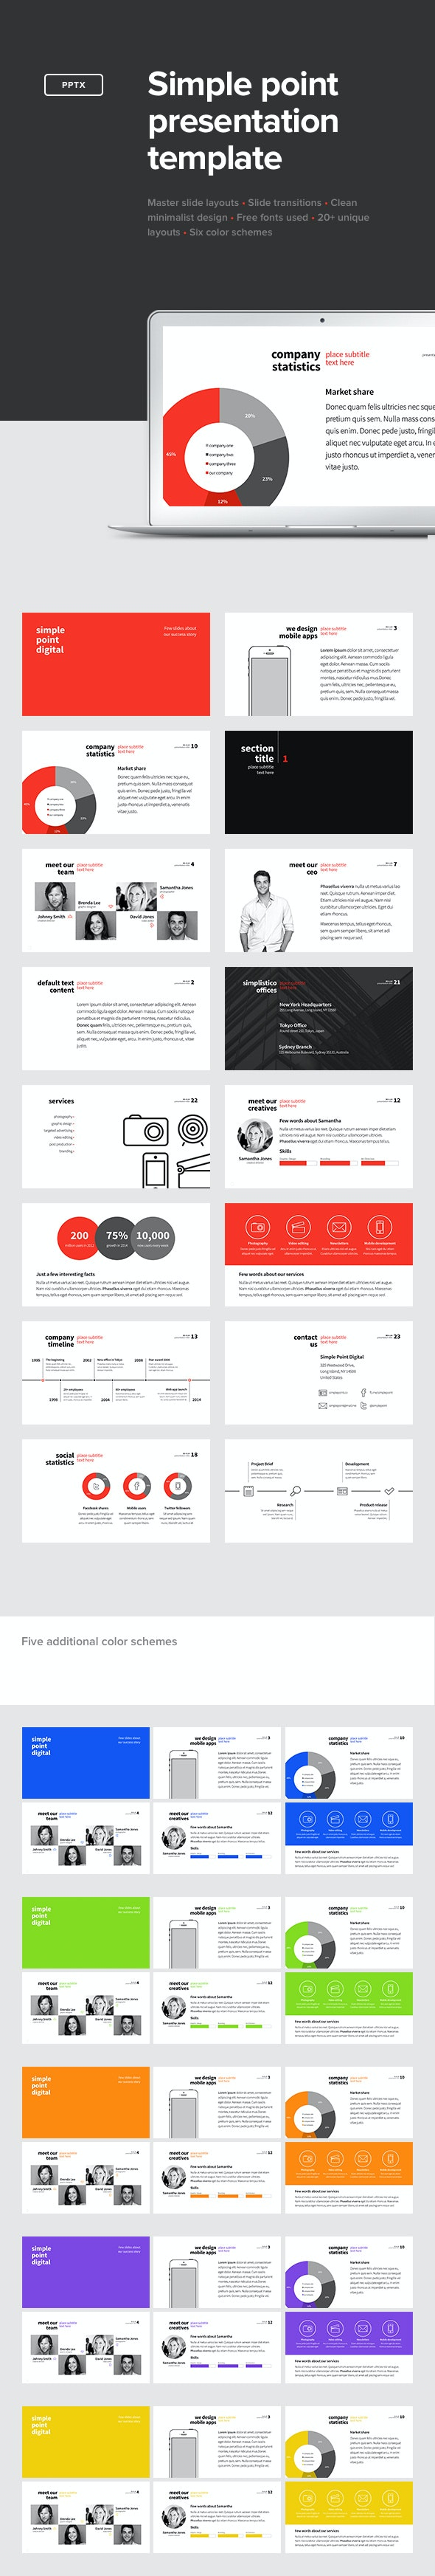 Simple Point Presentation Template - PowerPoint Templates Presentation Templates